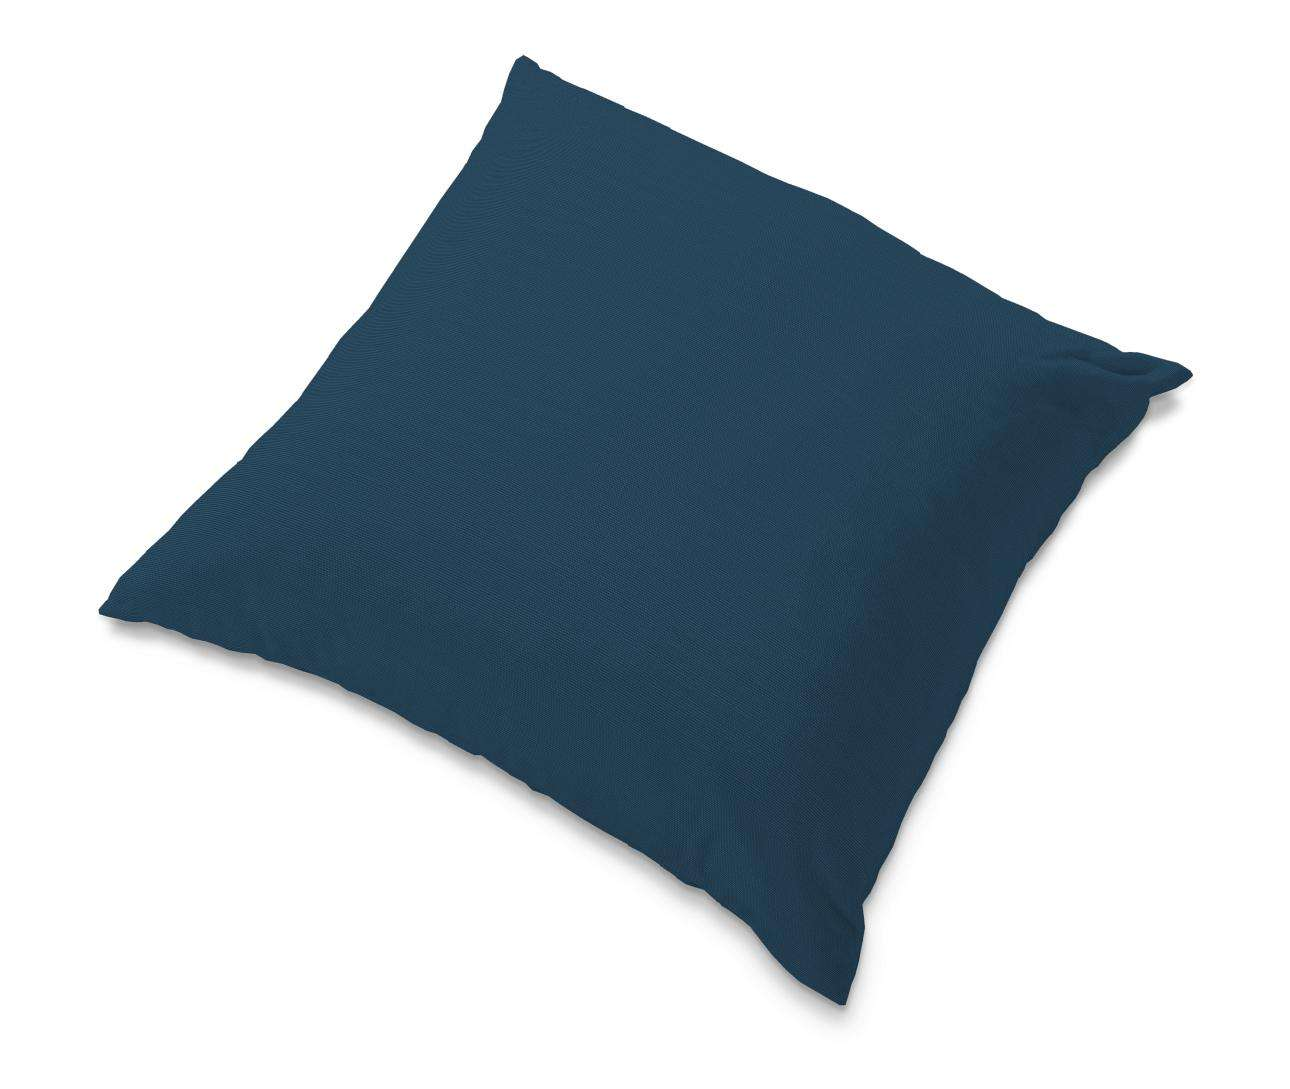 Tomelilla cushion cover 55 × 55 cm (22 × 22 inch) in collection Panama Cotton, fabric: 702-30